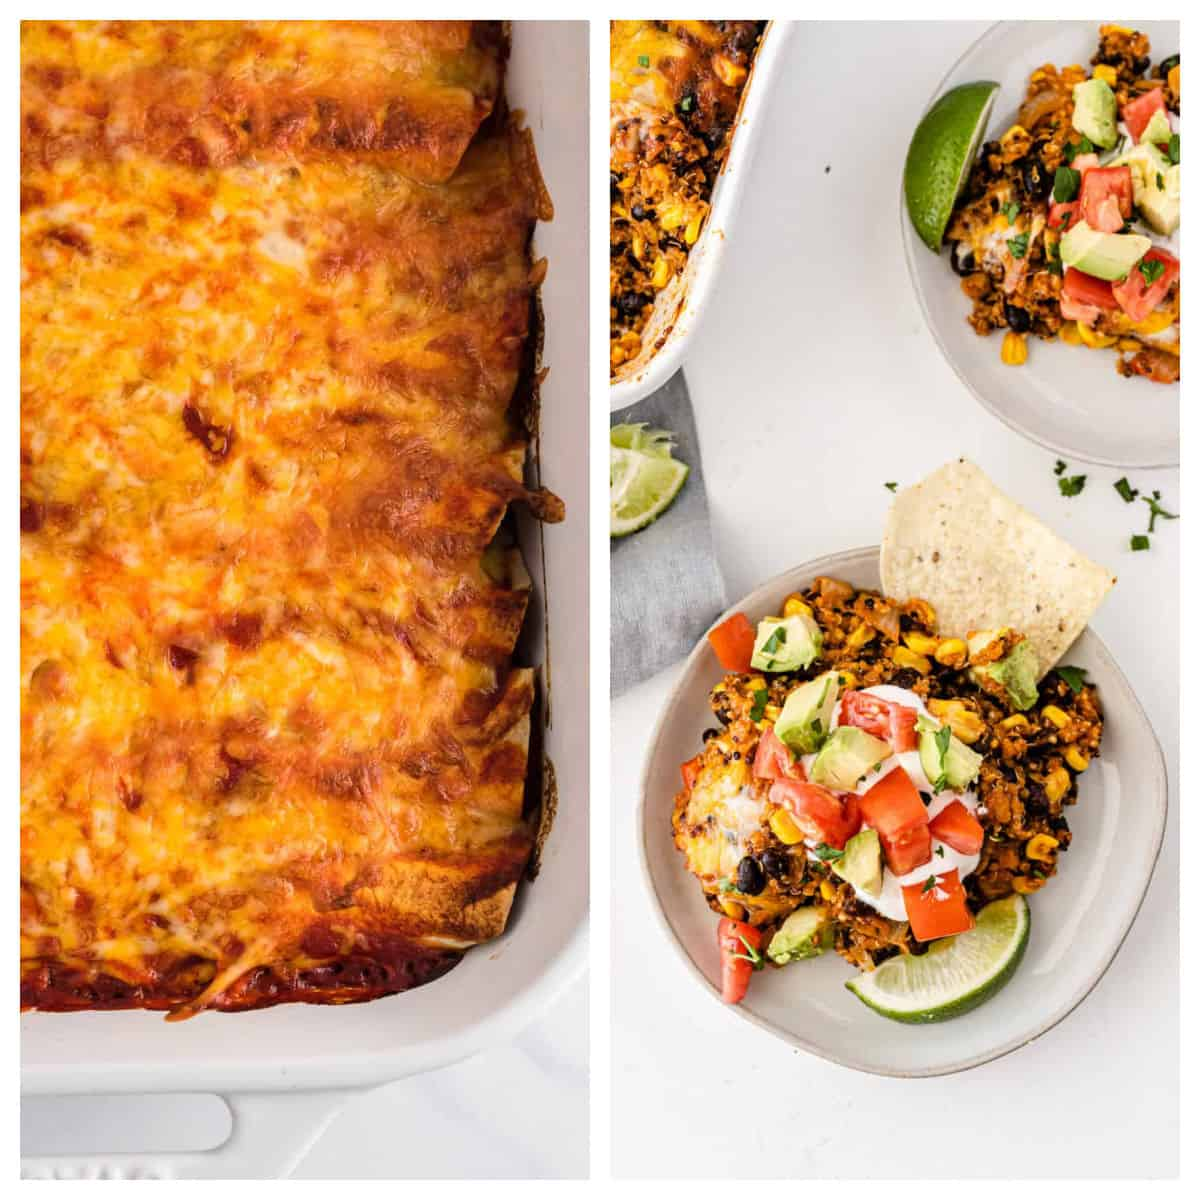 collage image showing enchiladas and quinoa mexican casserole